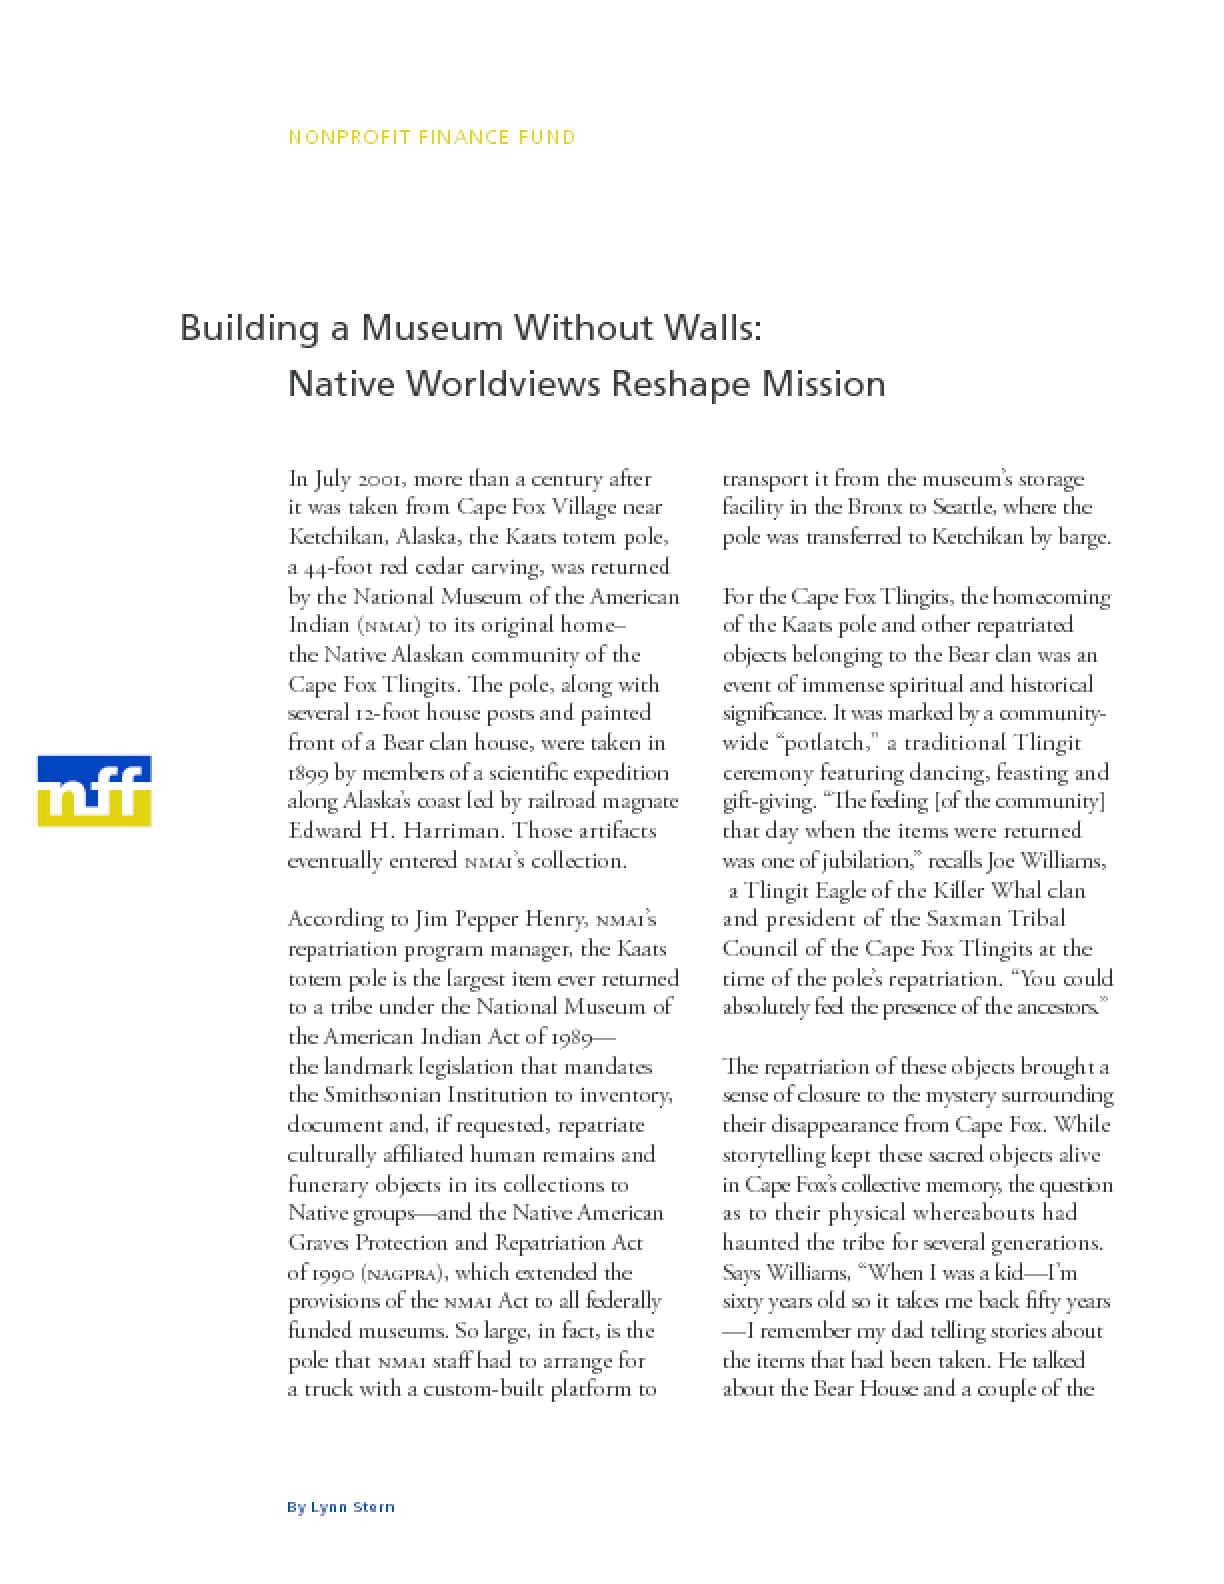 Building a Museum Without Walls: Native Worldviews Reshape Mission